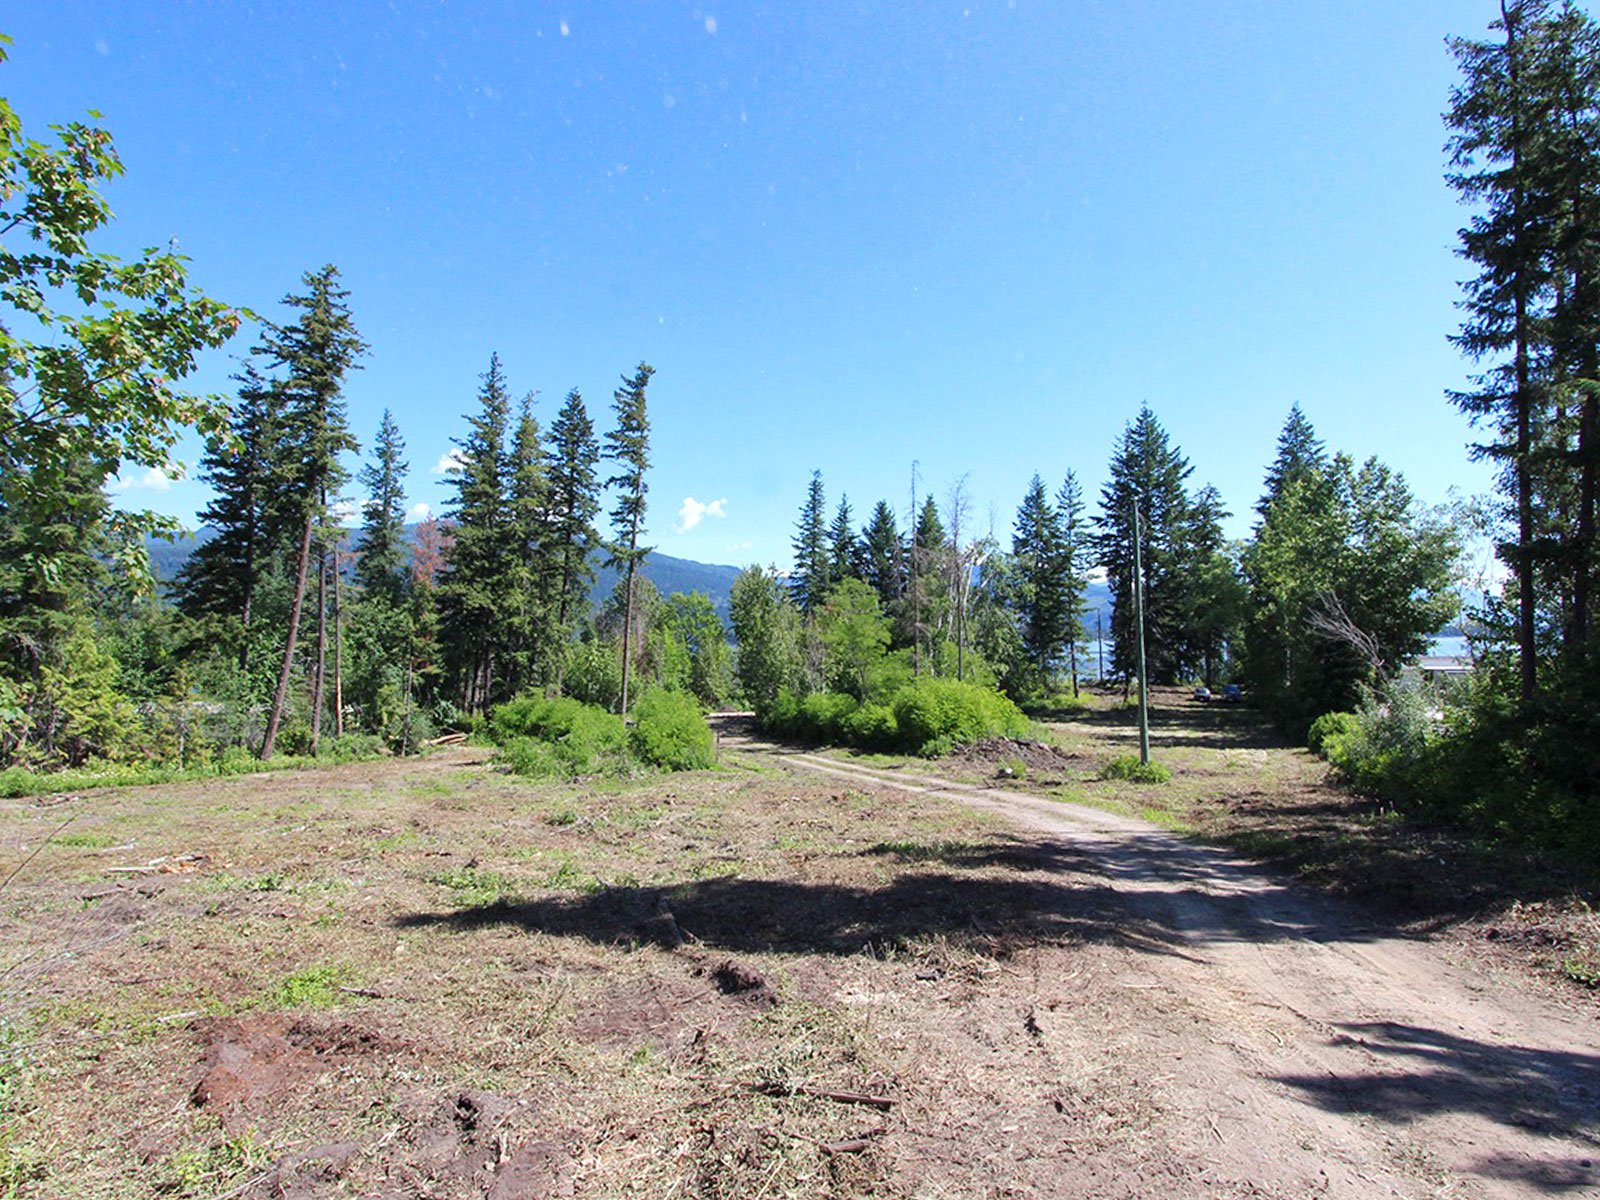 Photo 26: Photos: 663 Waverly Park Frontage Road in Sorrento, BC: Land Only for sale (Sorrento)  : MLS®# 10186241